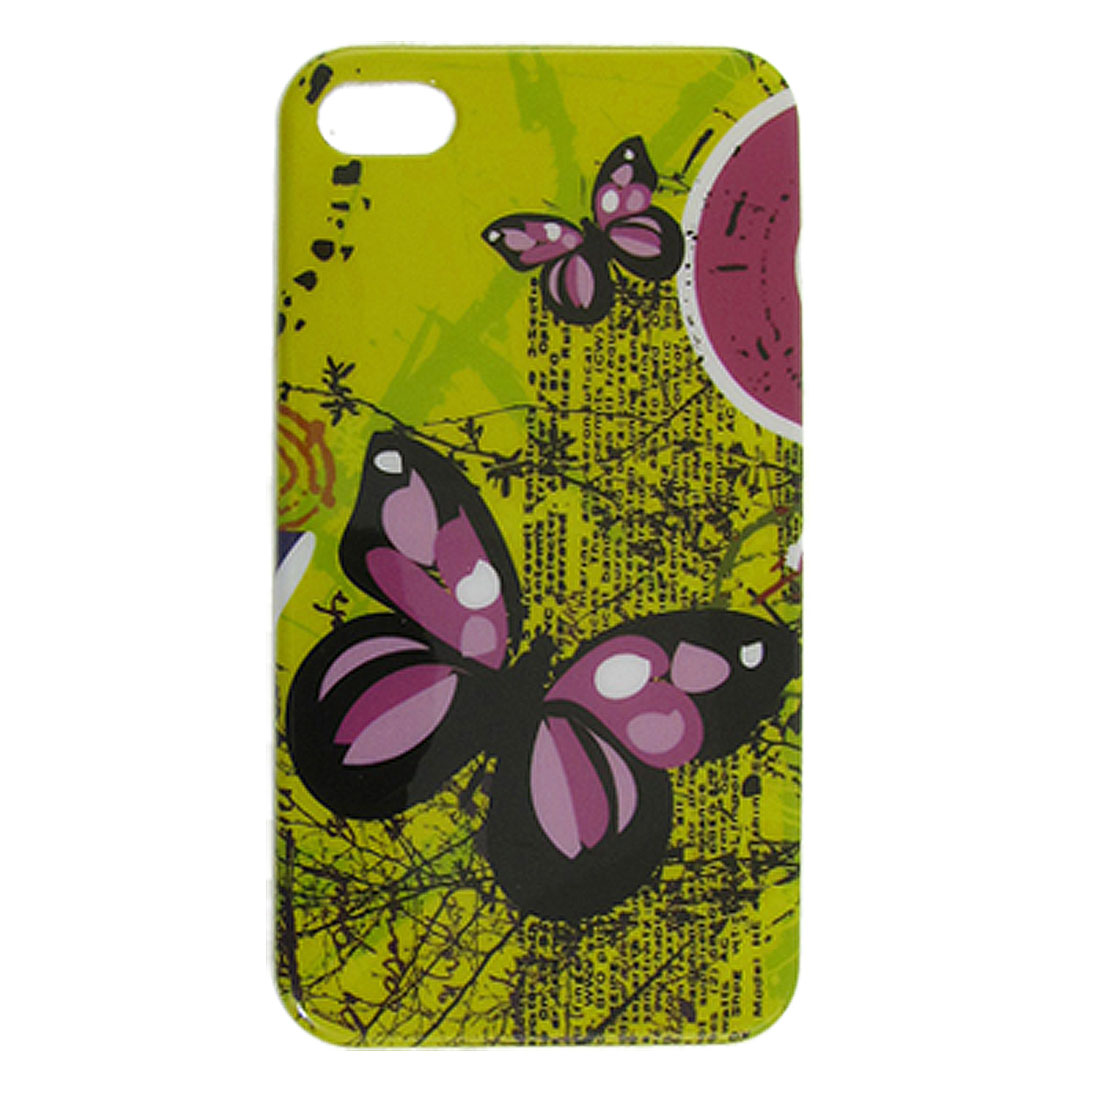 Butterfly Tree Pattern IMD Yellow Hard Plastic Back Shell for iPhone 4 4G 4GS